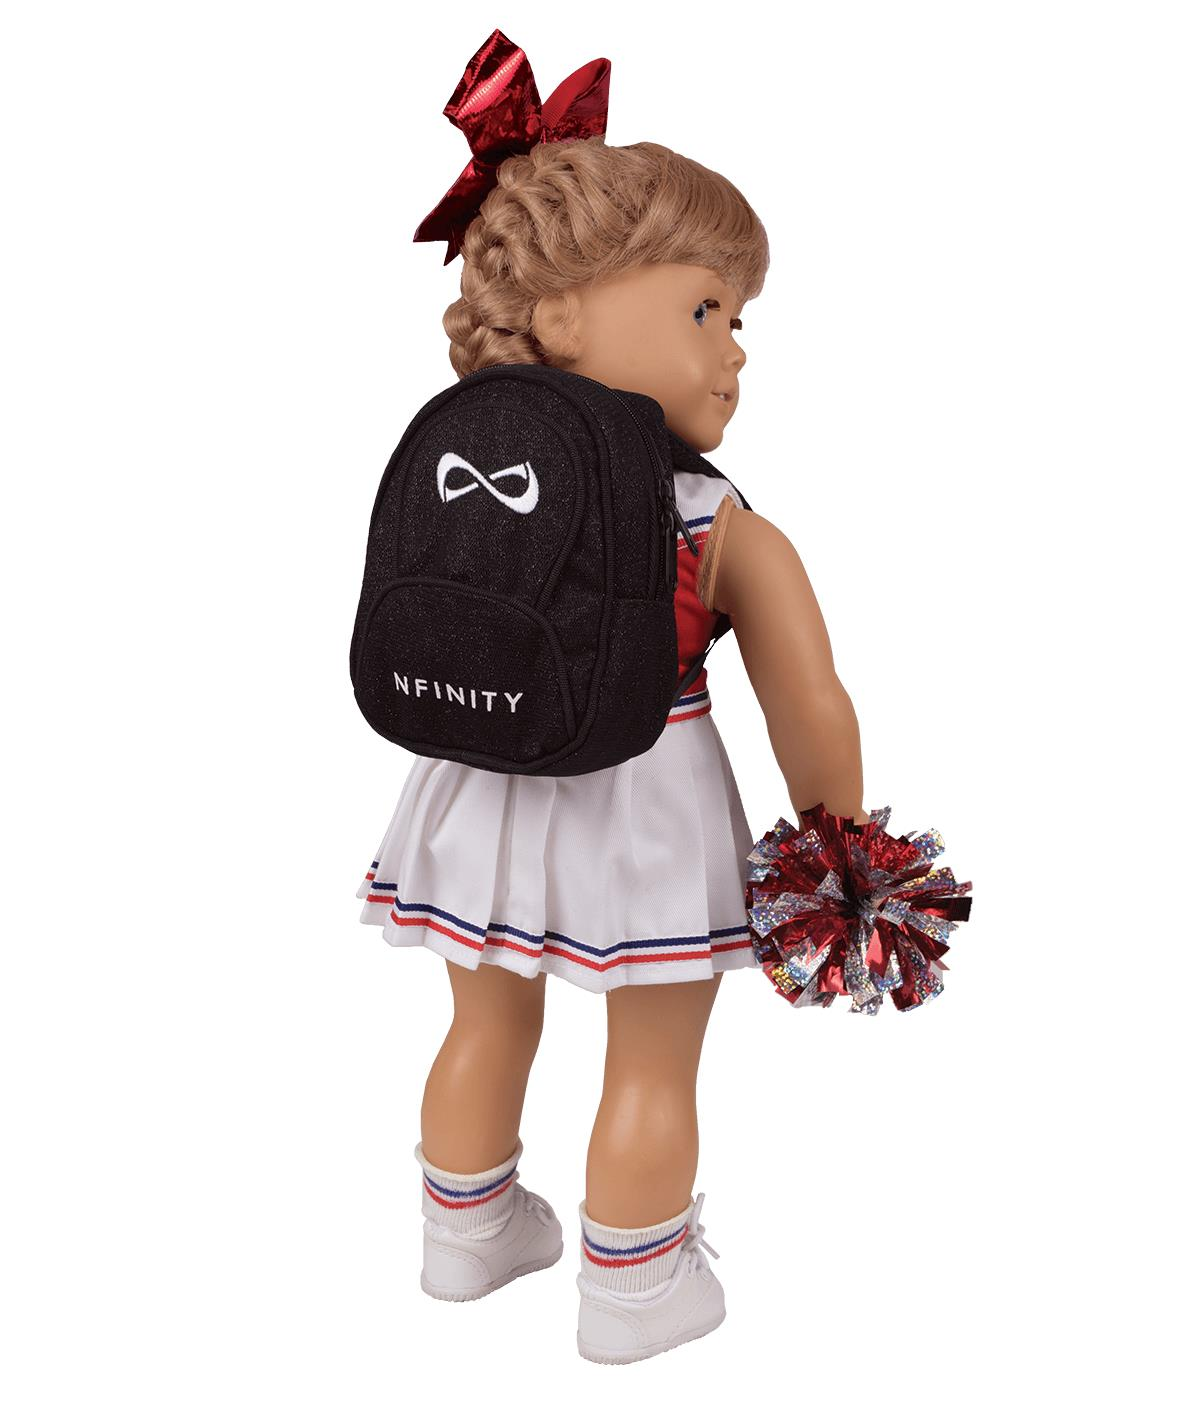 Nfinity Mini Sparkle Backpack